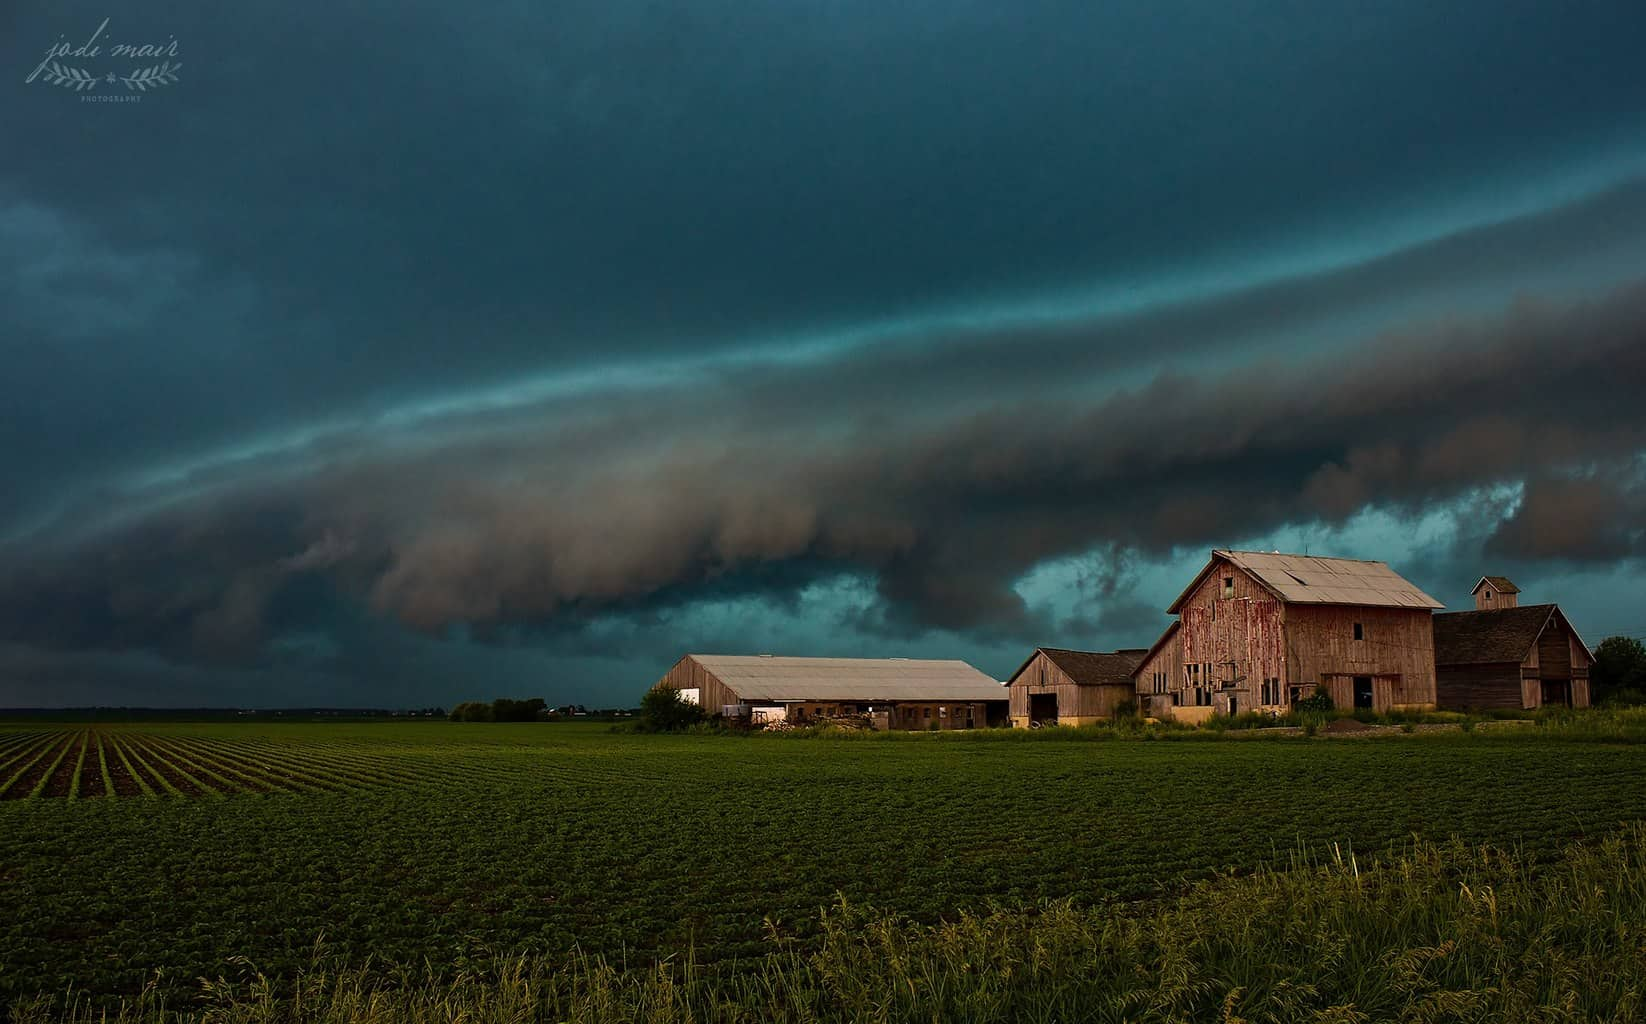 """As we are expecting another 3-5"""" of snow tonight/tomorrow in northern Illinois, I can't help but let my mind wander back to warmer days and stormier scenes. This is one of my most favorite photos ever from June 21, 2014 near Sugar Grove, Illinois. Sadly, these barns are no longer standing."""